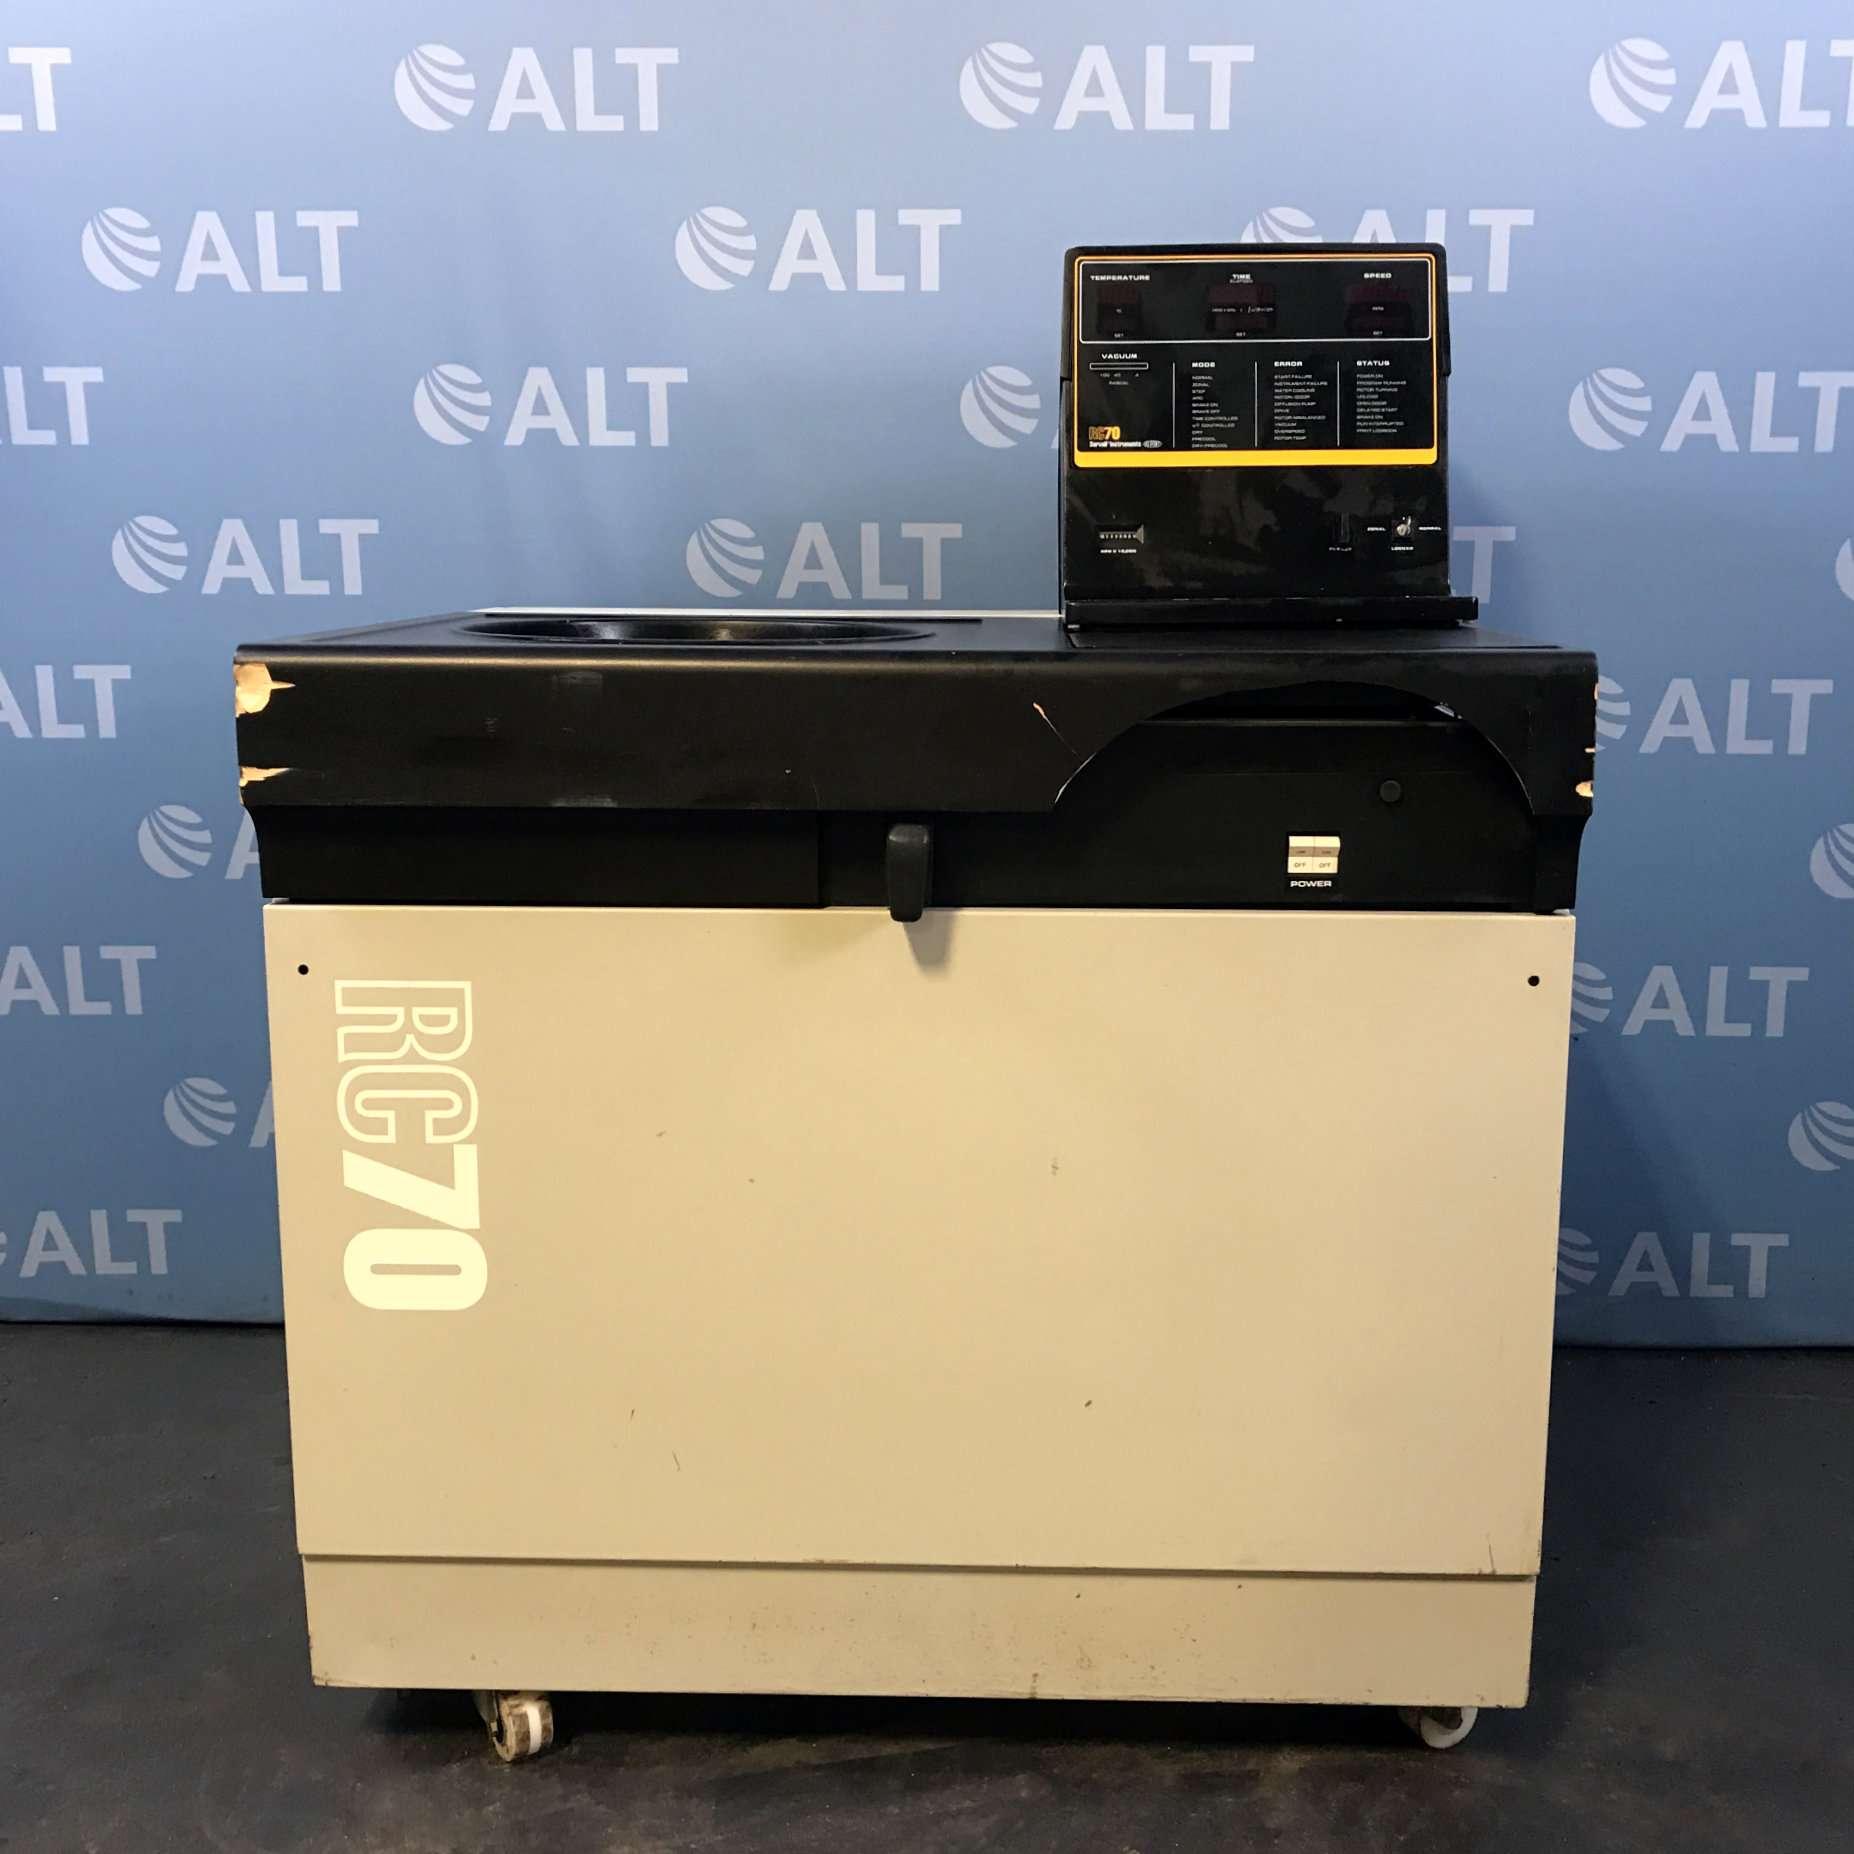 Sorvall/Dupont RC-70 Ultra-Speed Centrifuge Image